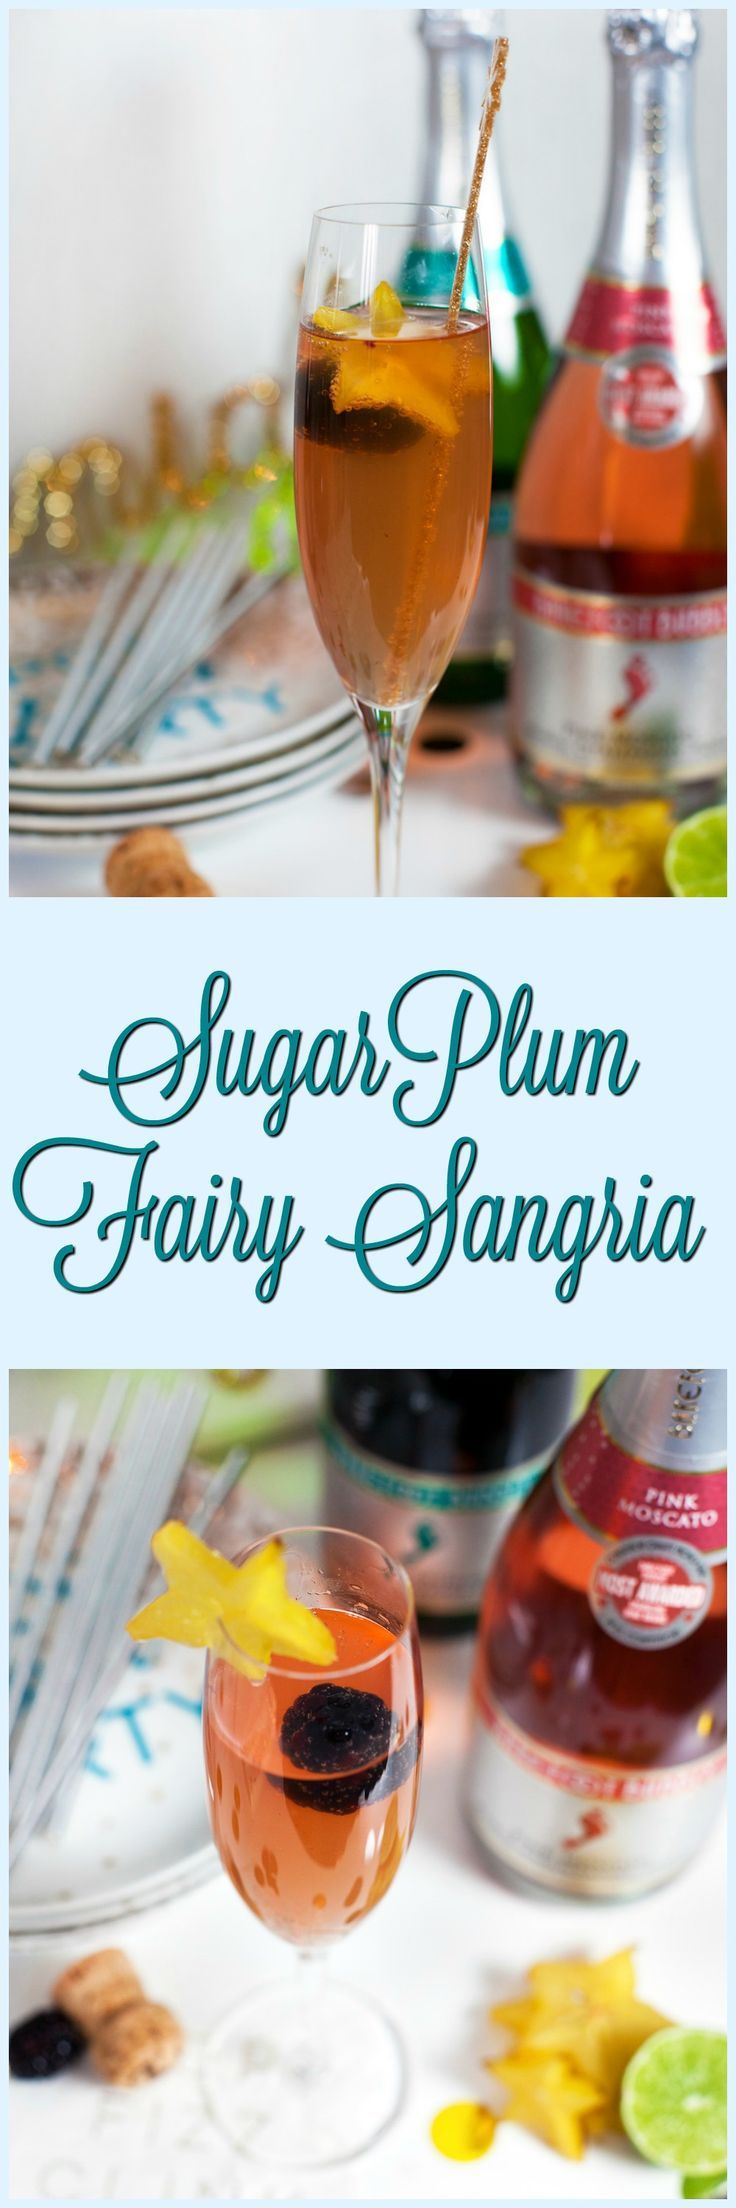 Sugarplum Fairy Sangria